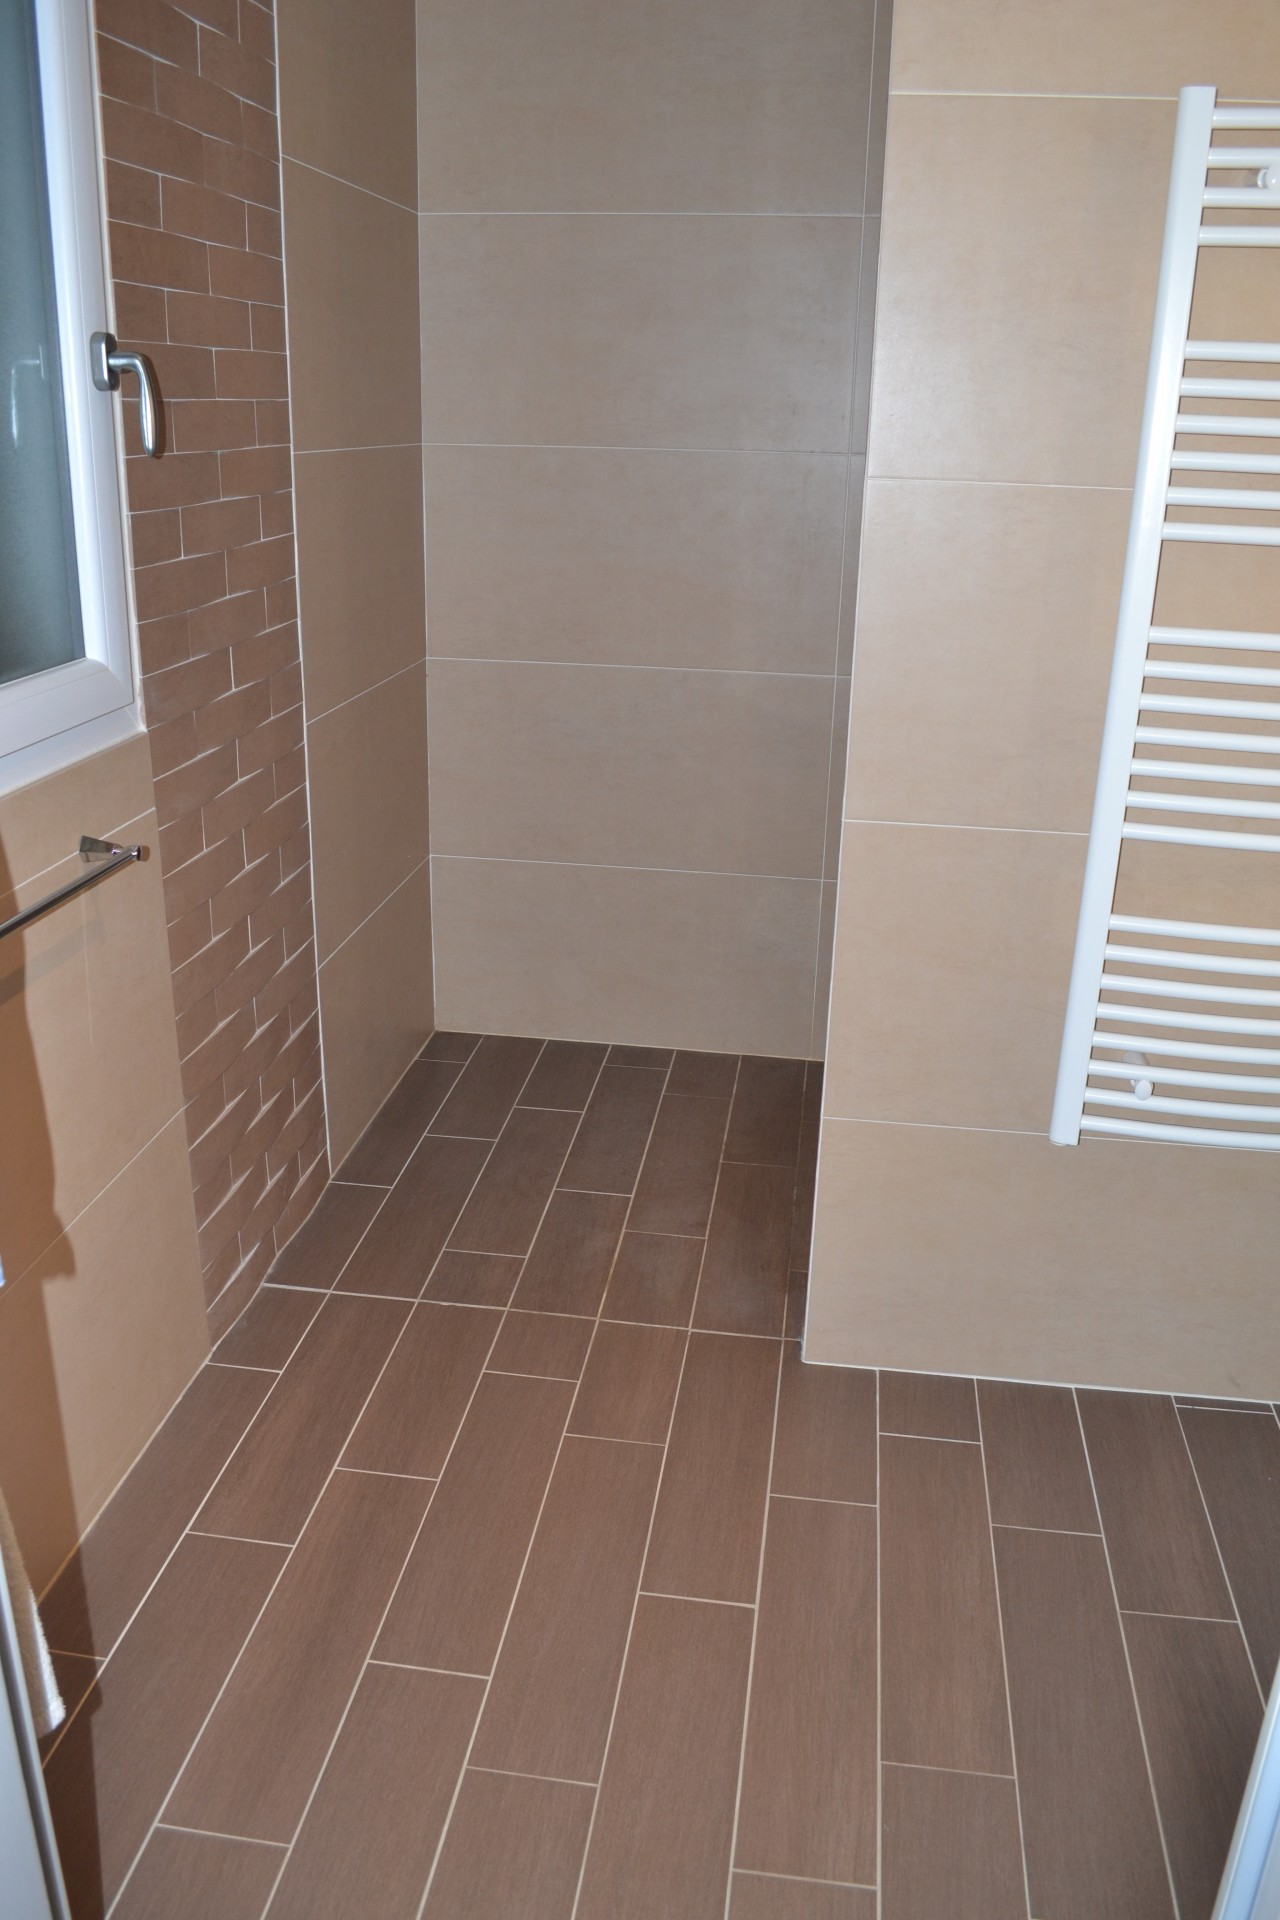 Carrelage imitation parquet lini res carrelages angers for Salle de bain carrelage parquet